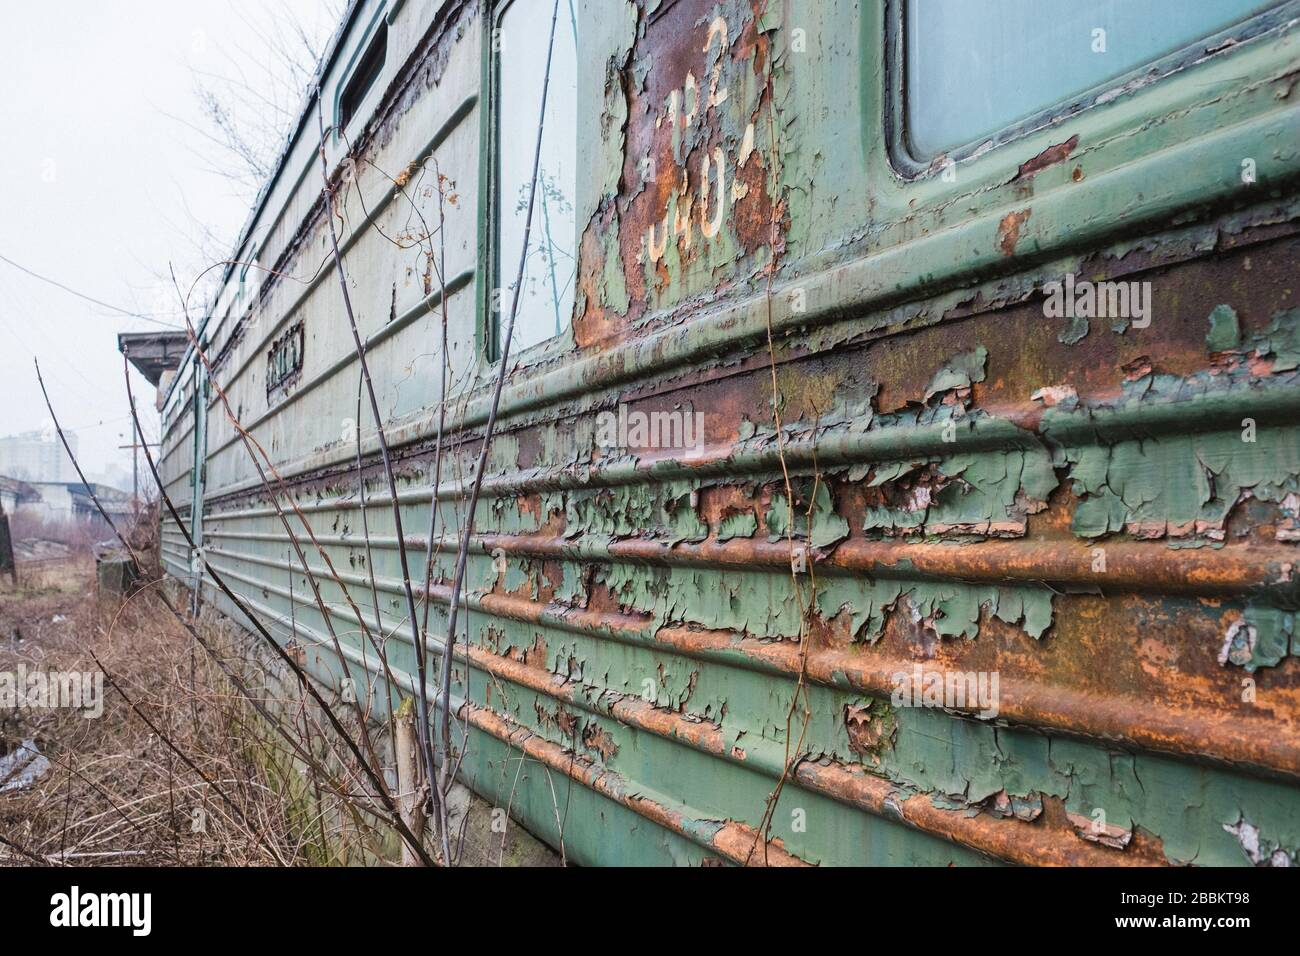 old rusty weathered peeled paint of an old wagon. Blue abandoned railway carriage. Old railwaystation Stock Photo